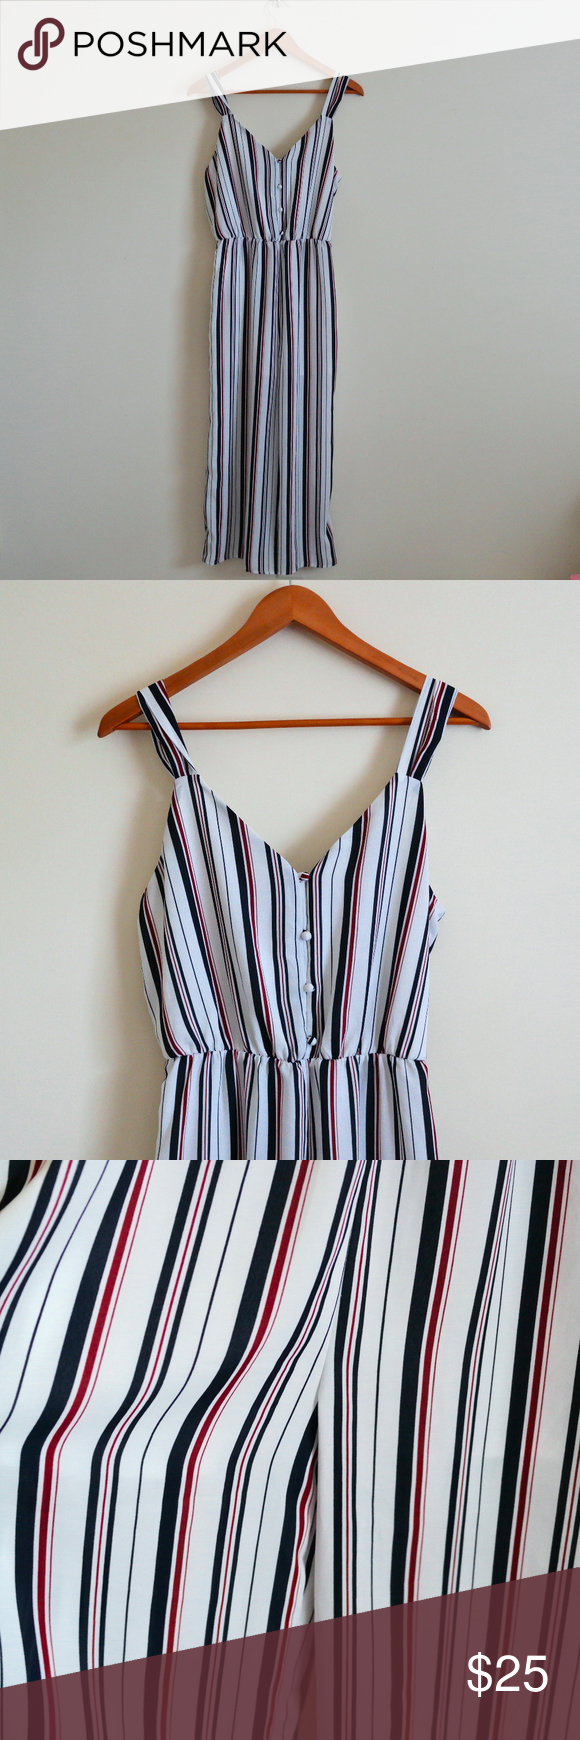 9f86ec255ad5 SIENNA SKY Striped Ribbon Back Jumpsuit I fell in love with this jump suit  this summer